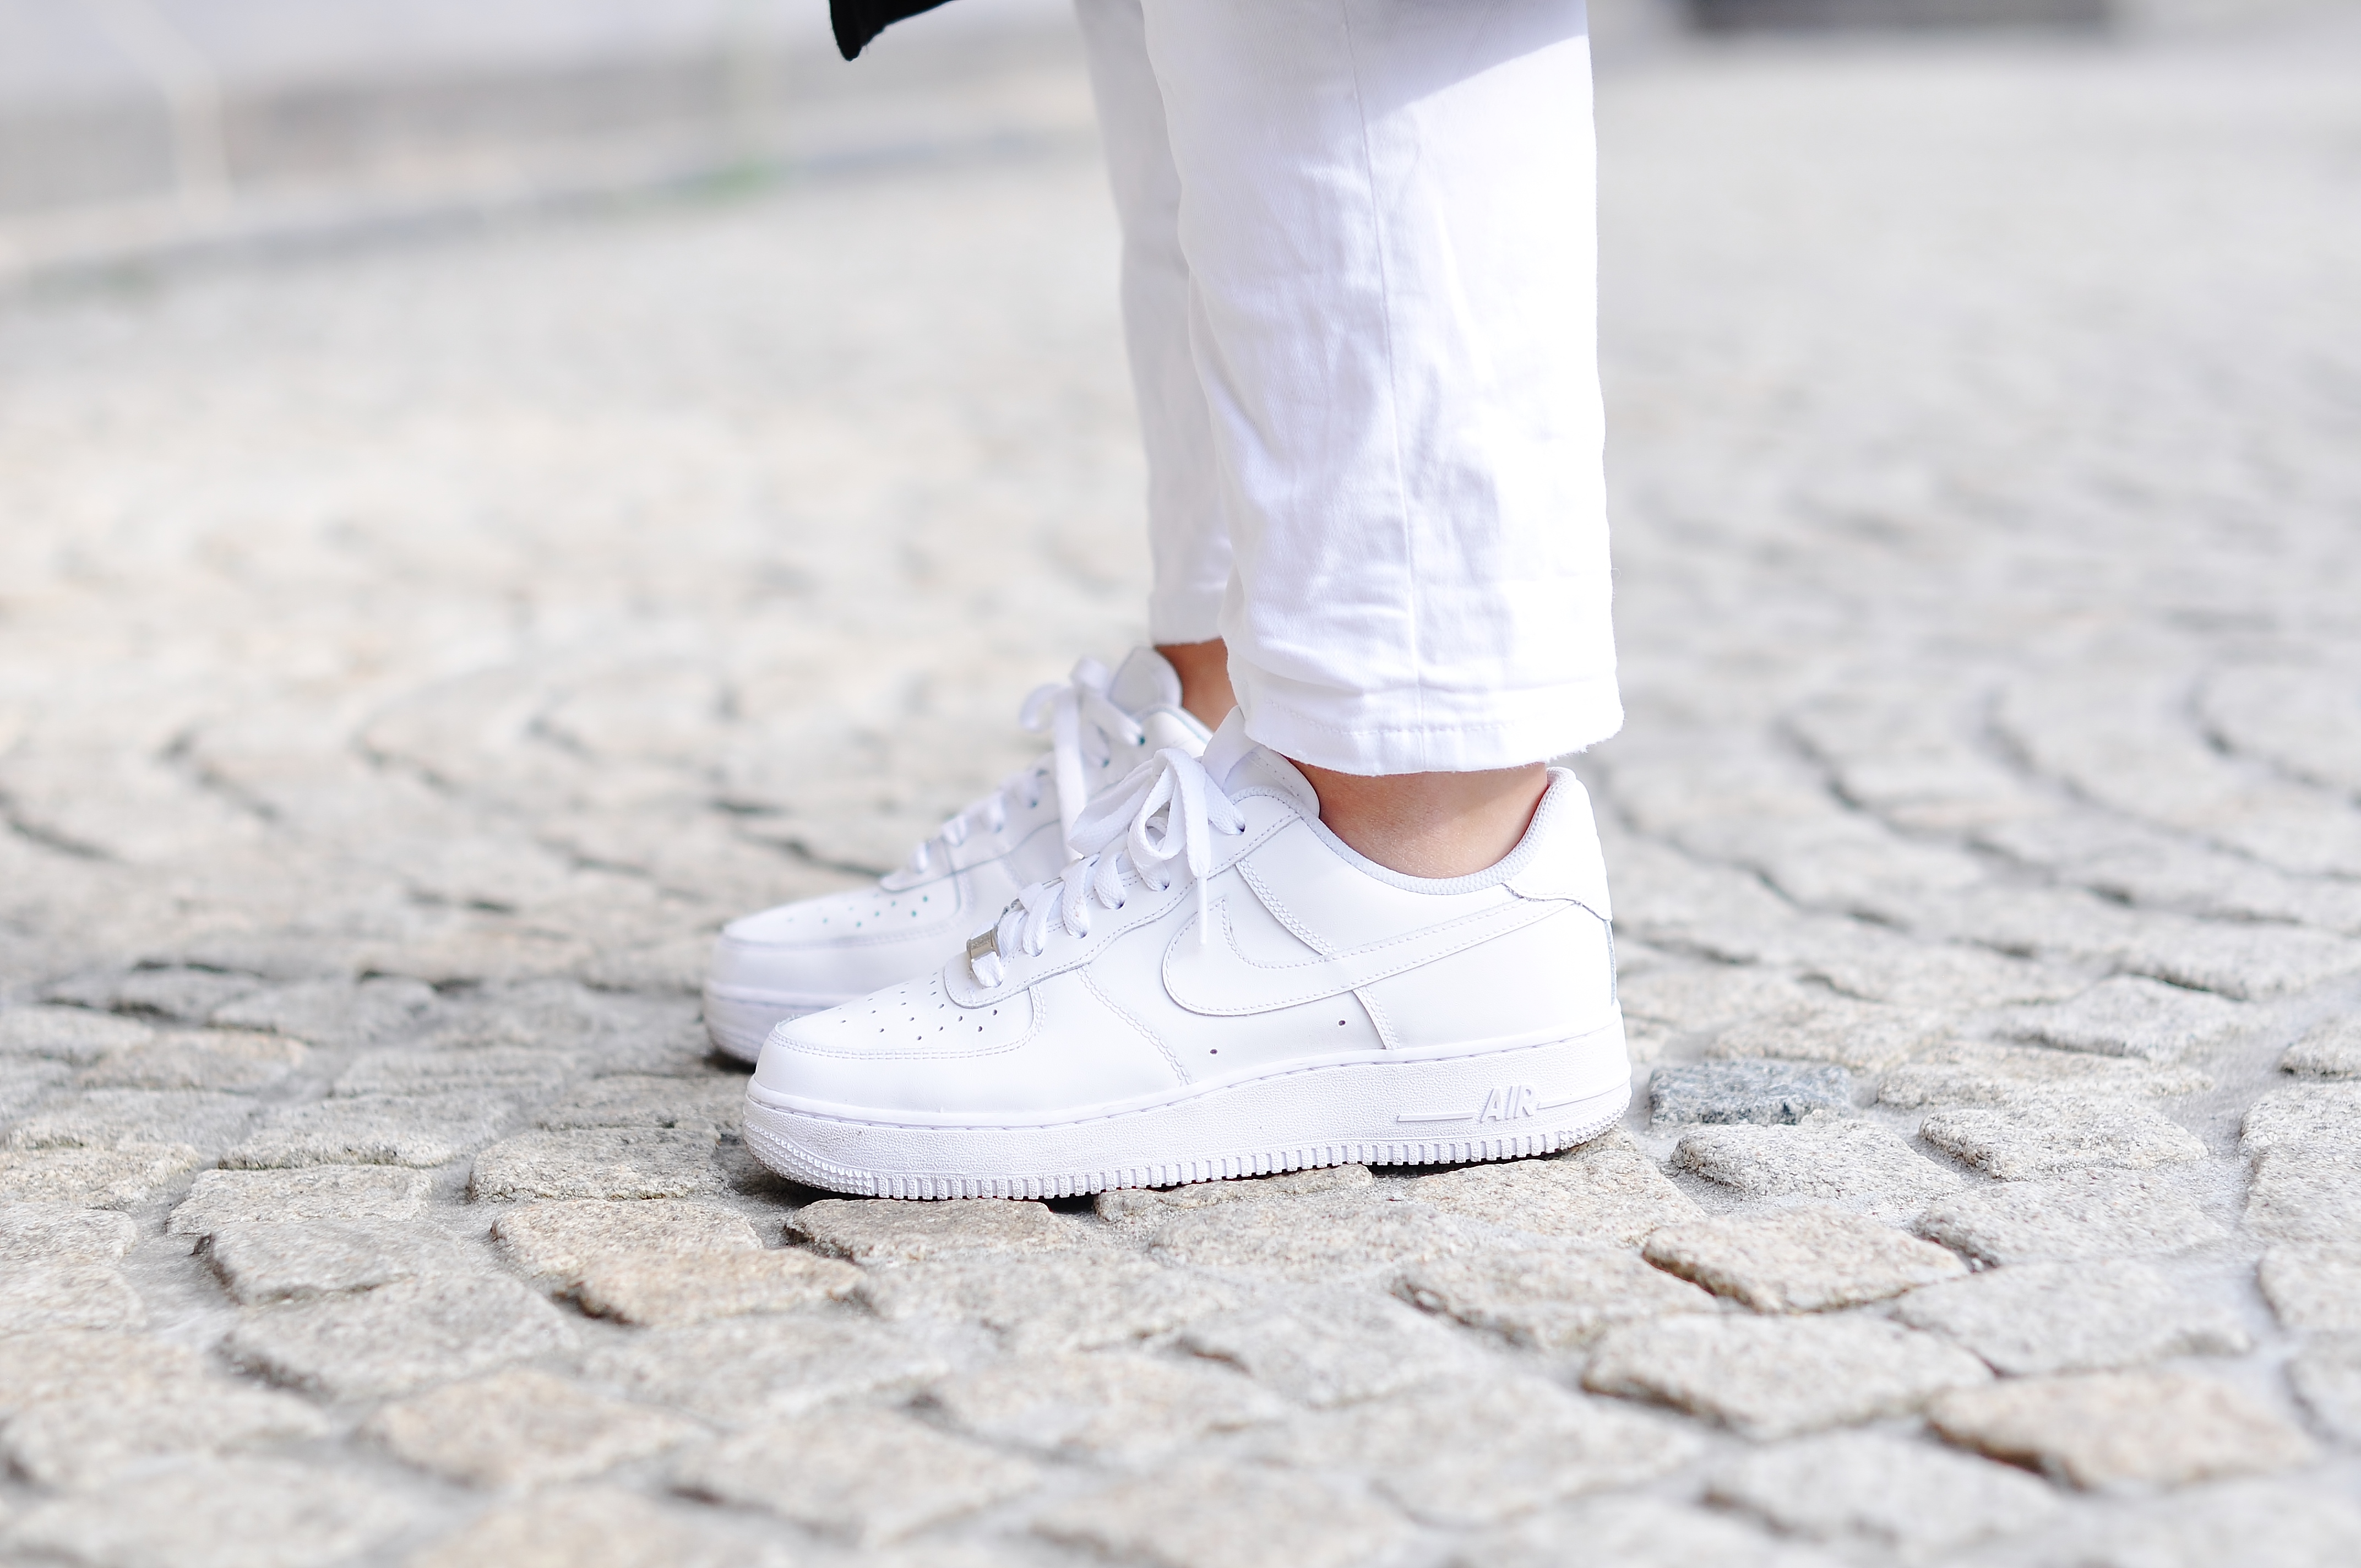 Sneakers Shirt Force White Air Mango Jeans Nike Outfit 1 Blue Baggy dtwwZFqr